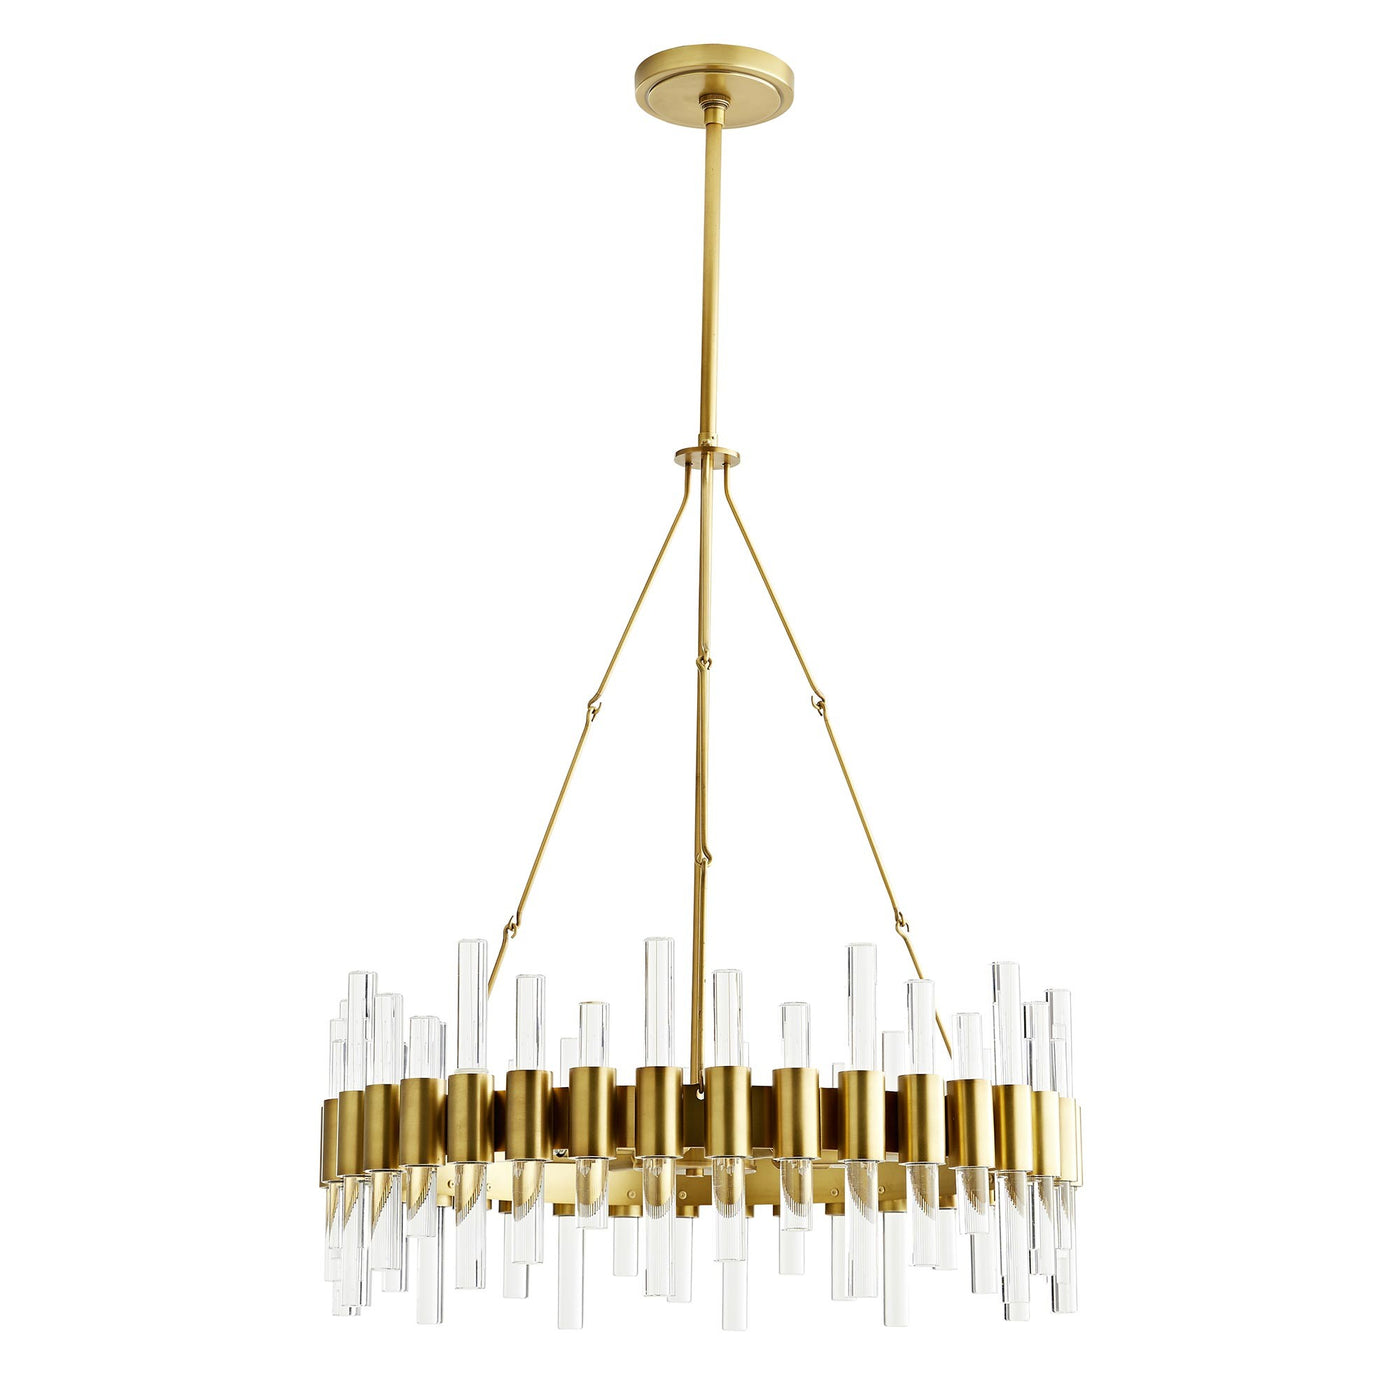 Arteriors Home Haskell Small Chandelier Hanging Antique Brass Steel